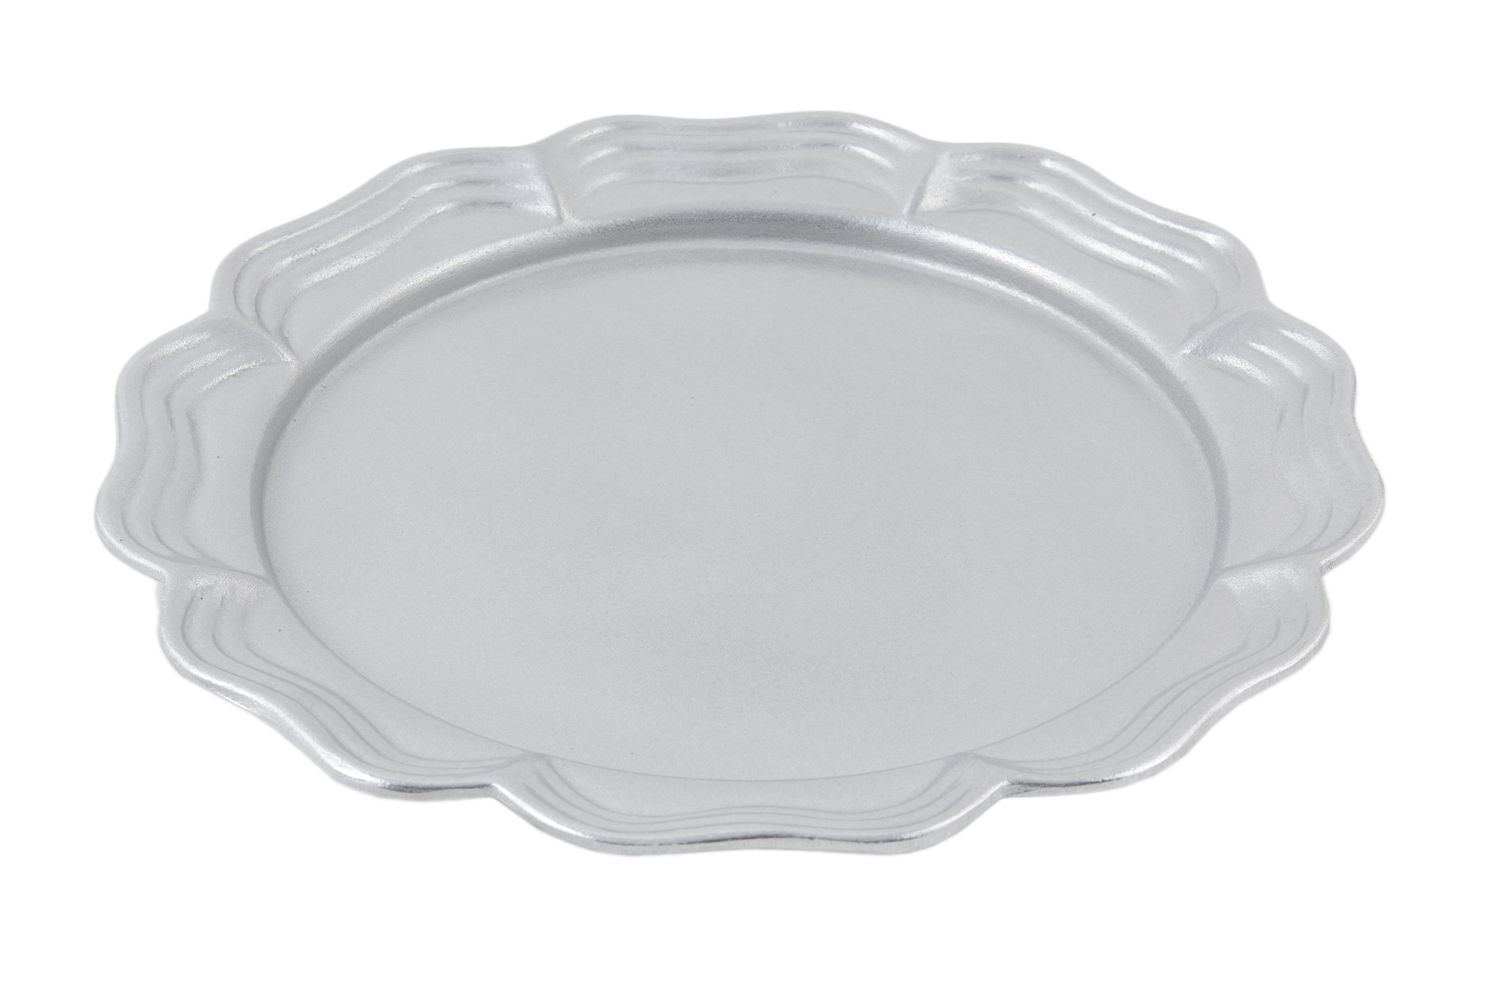 "Bon Chef 2067P Queen Anne Round Platter, Pewter Glo 13"" Dia., Set of 2"